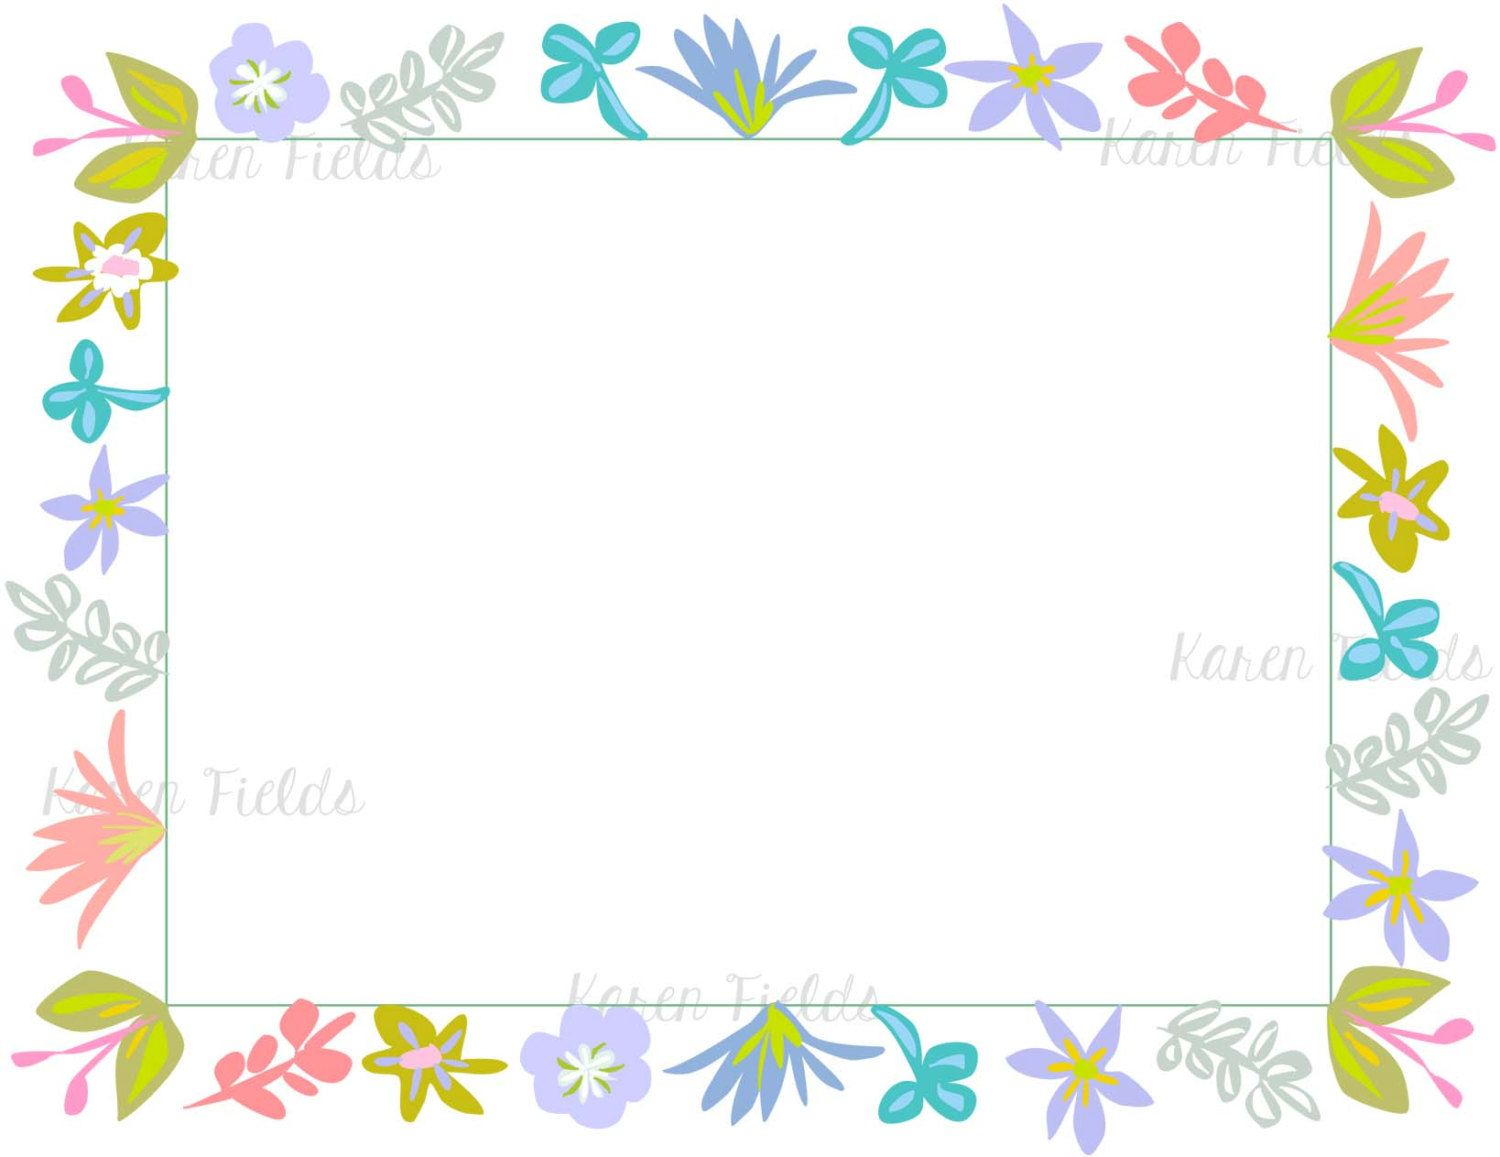 Baby Shower Invites Australia was awesome invitation template